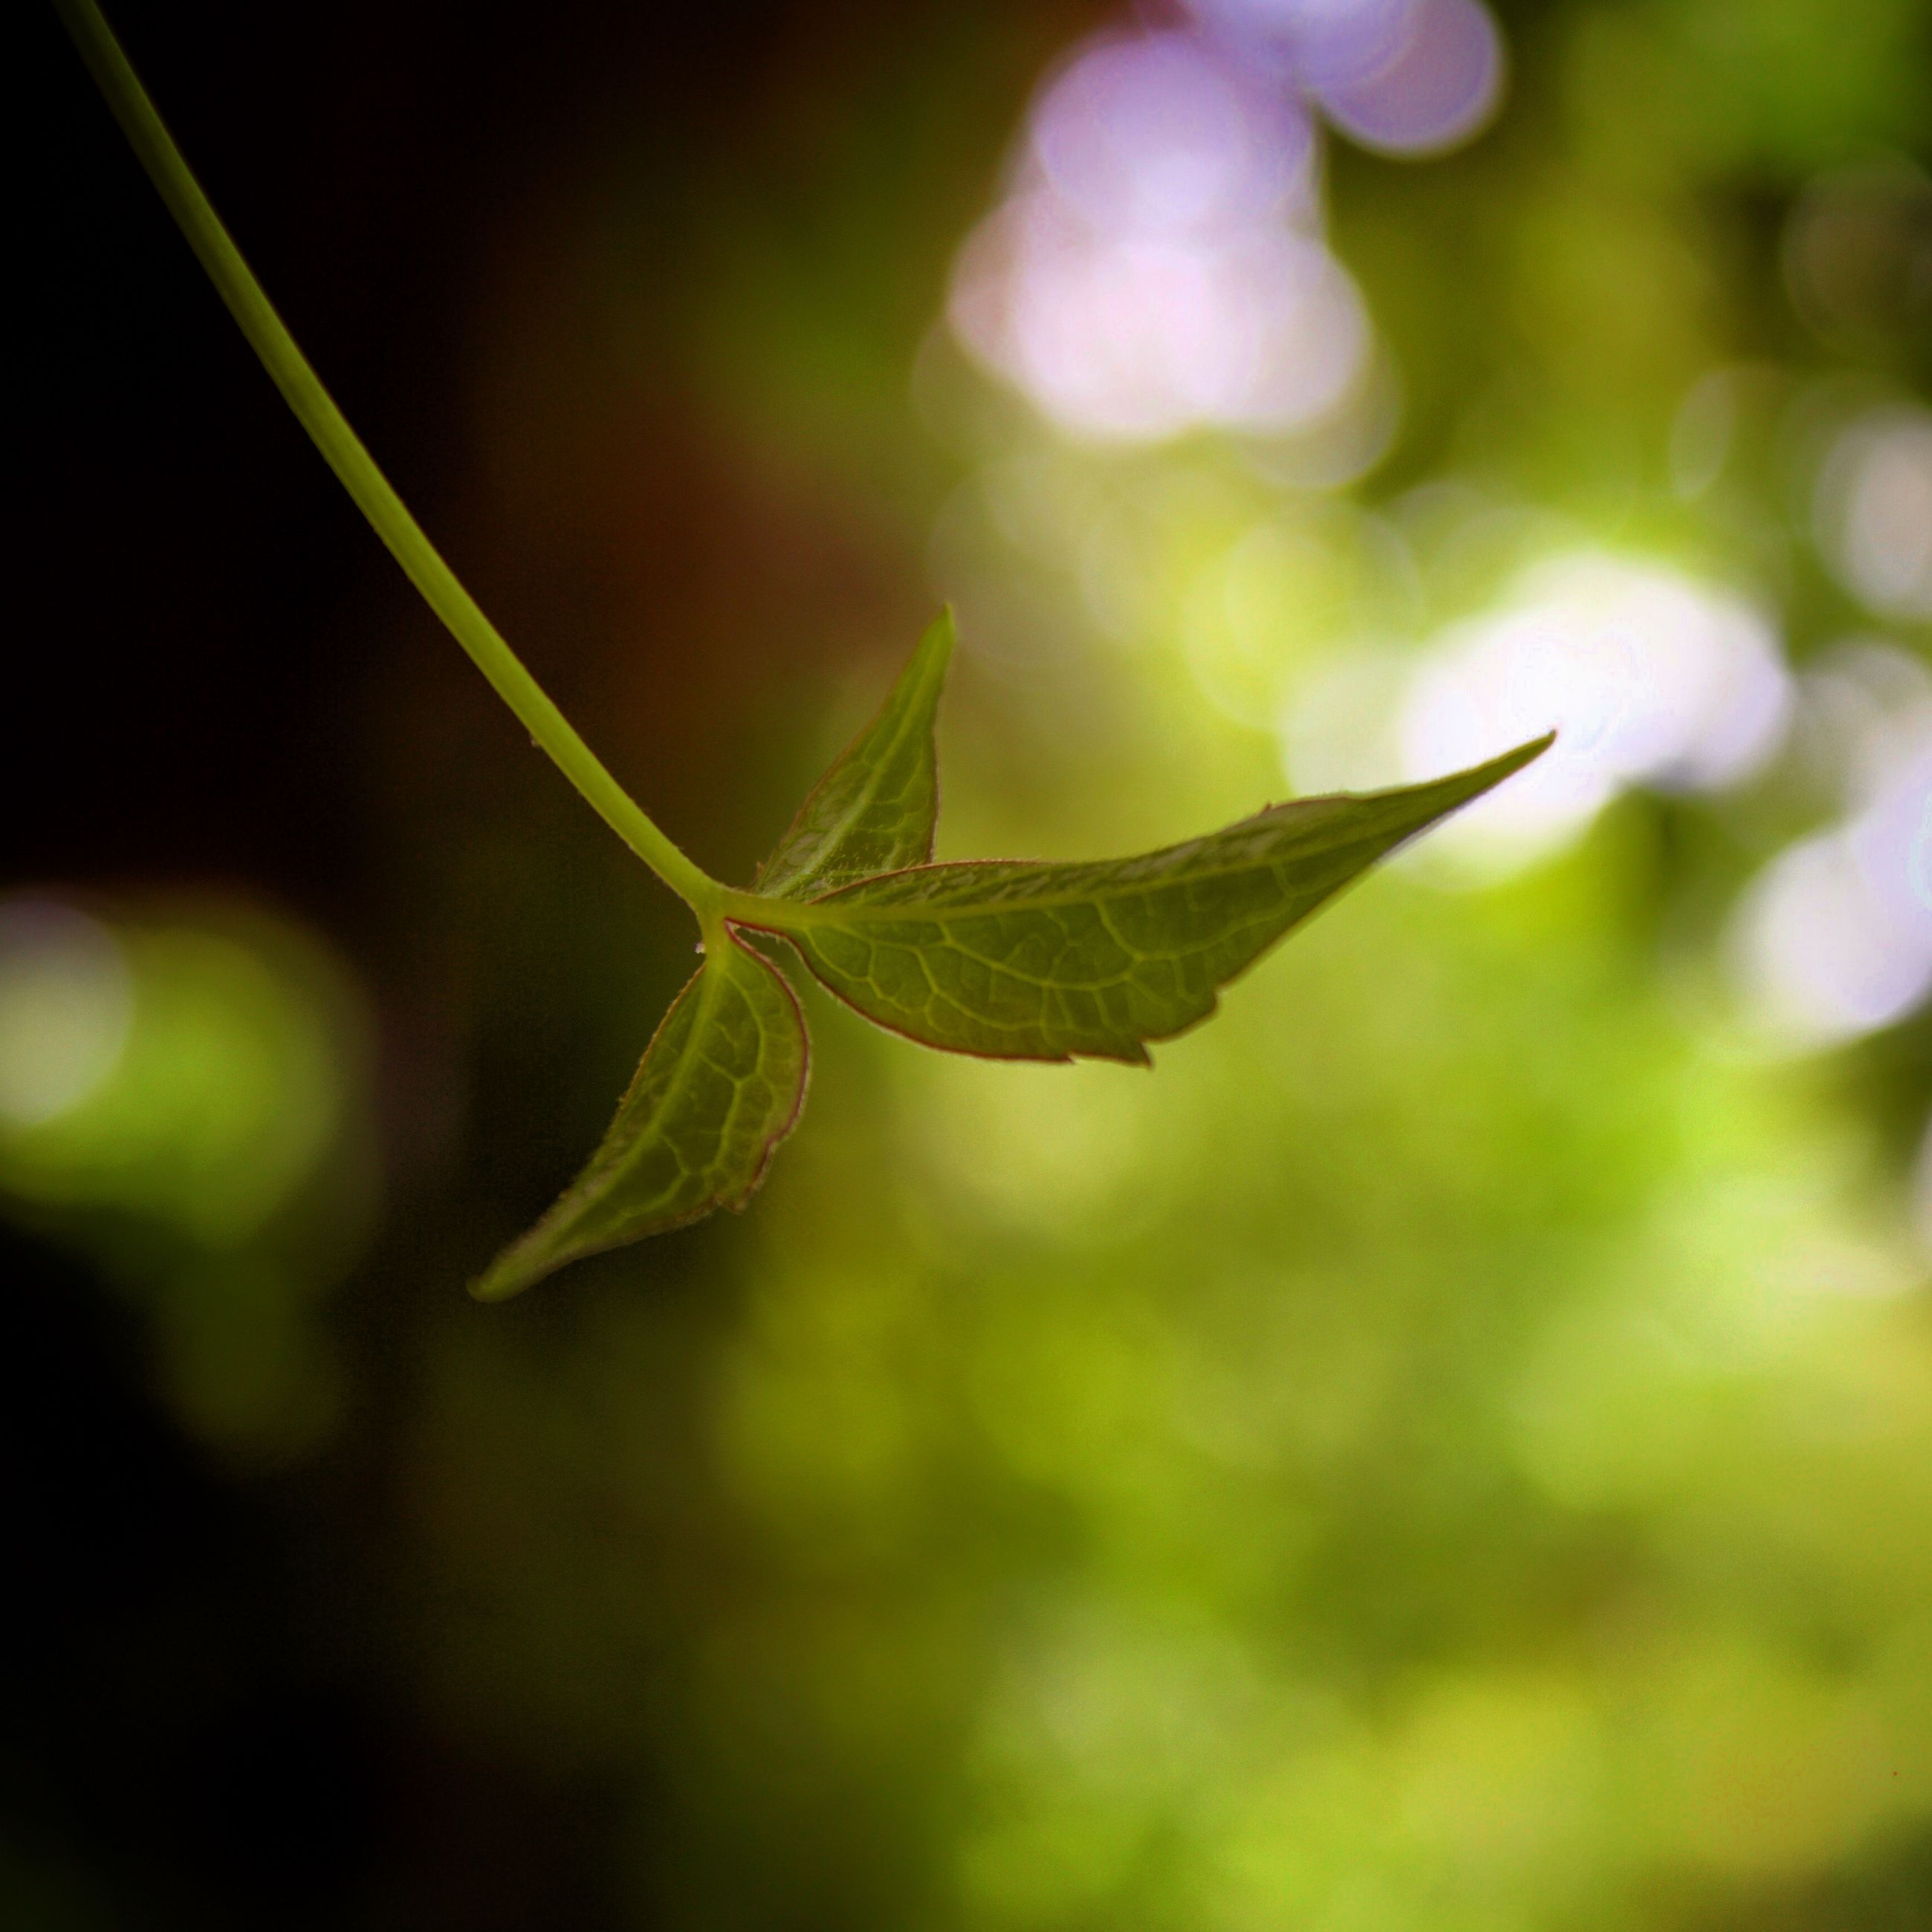 focus on foreground, close-up, growth, leaf, plant, nature, green color, beauty in nature, selective focus, botany, day, outdoors, freshness, fragility, tranquility, springtime, new life, growing, green, scenics, focus, no people